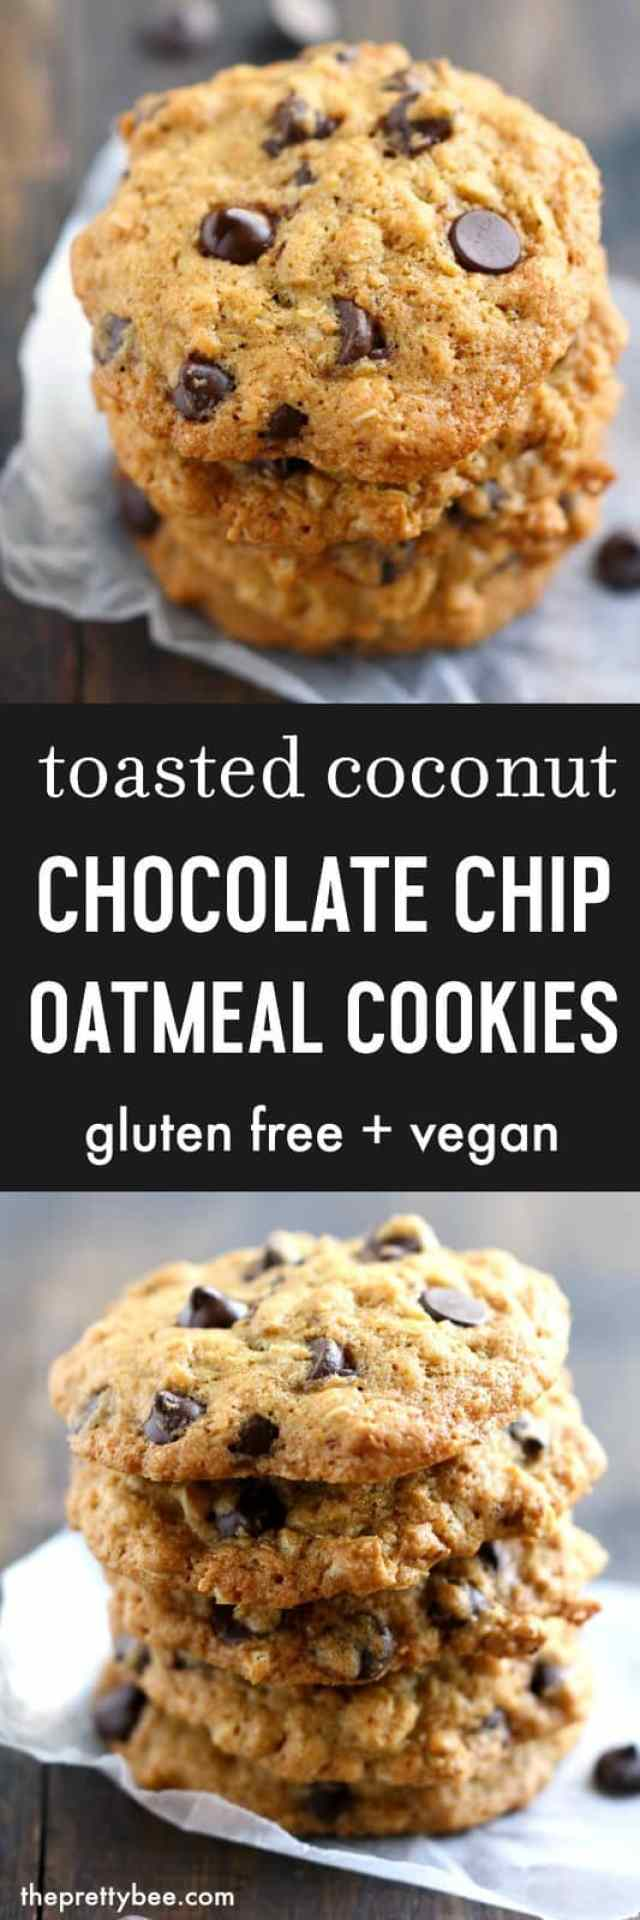 Toasted Coconut Chocolate Chip Oatmeal Cookies. - The Pretty Bee